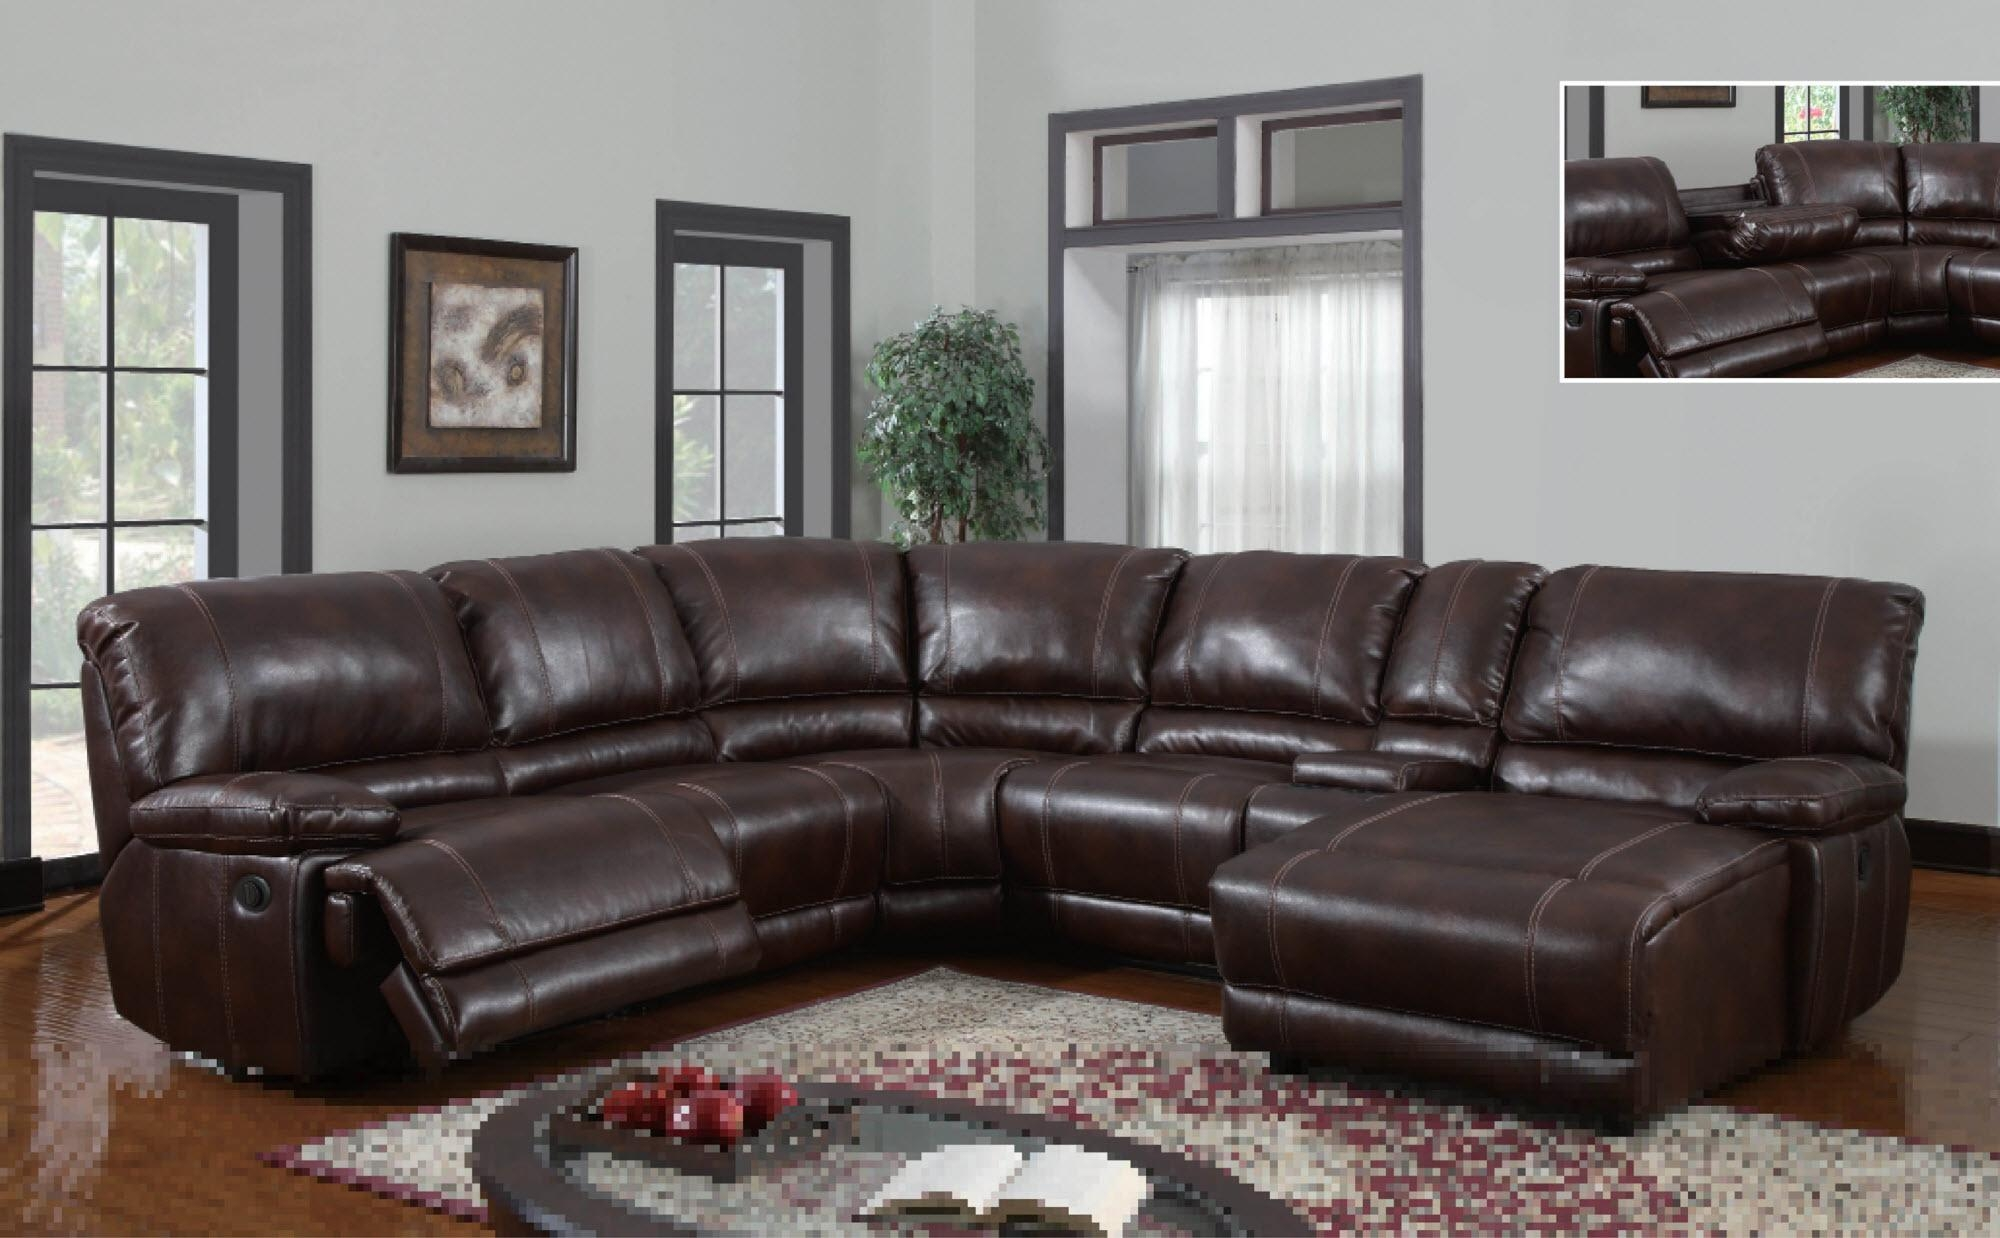 Furniture: Lazy Boy Sectional | Sectional Couches With Recliners Inside Sectional Sofas With Electric Recliners (Image 11 of 22)